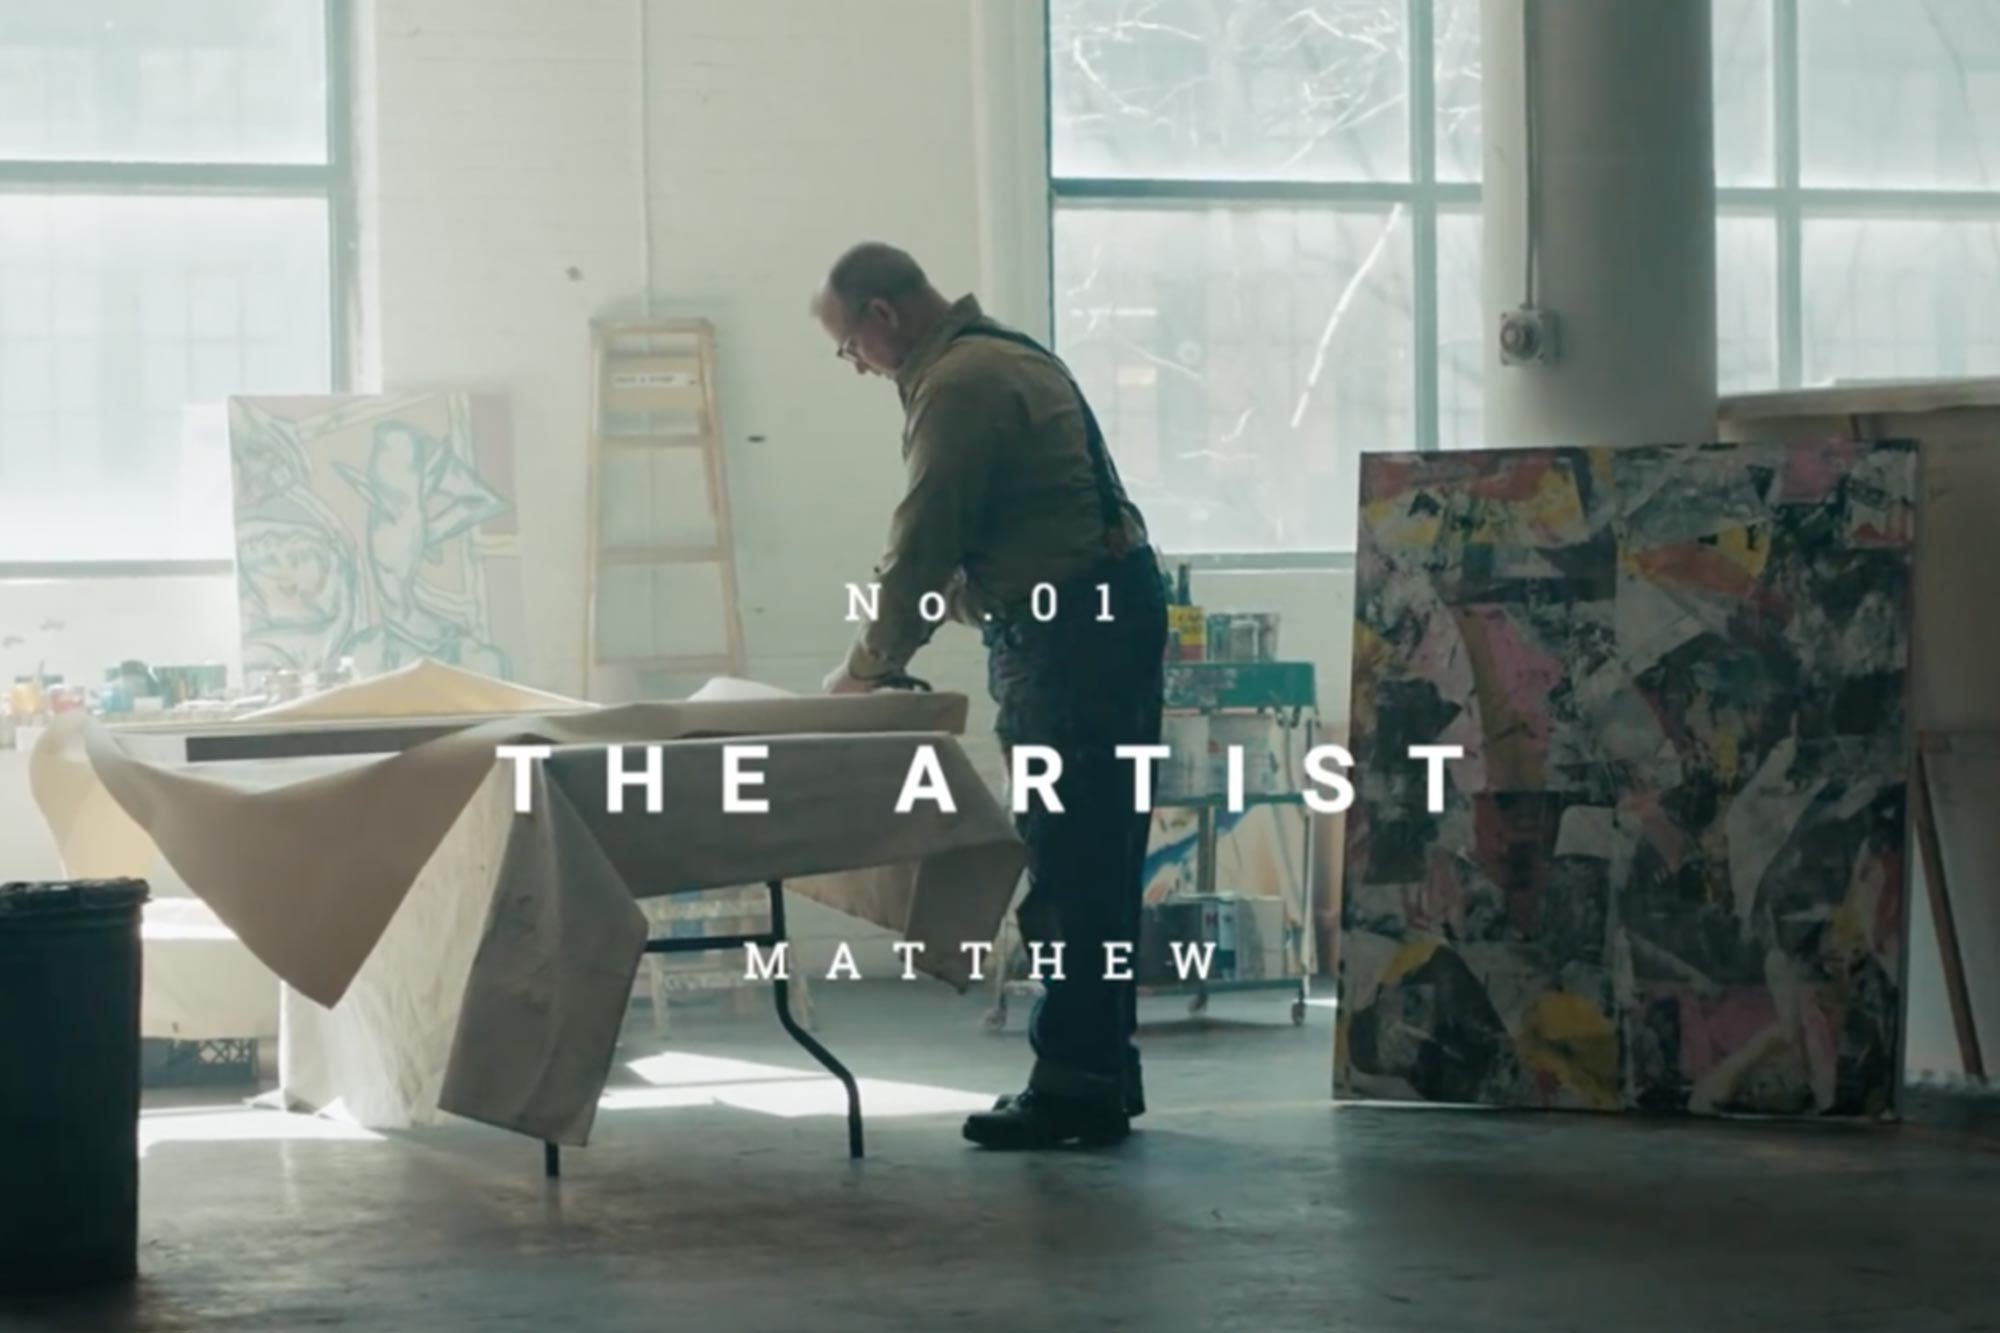 Brighthouse Financial — The Artist